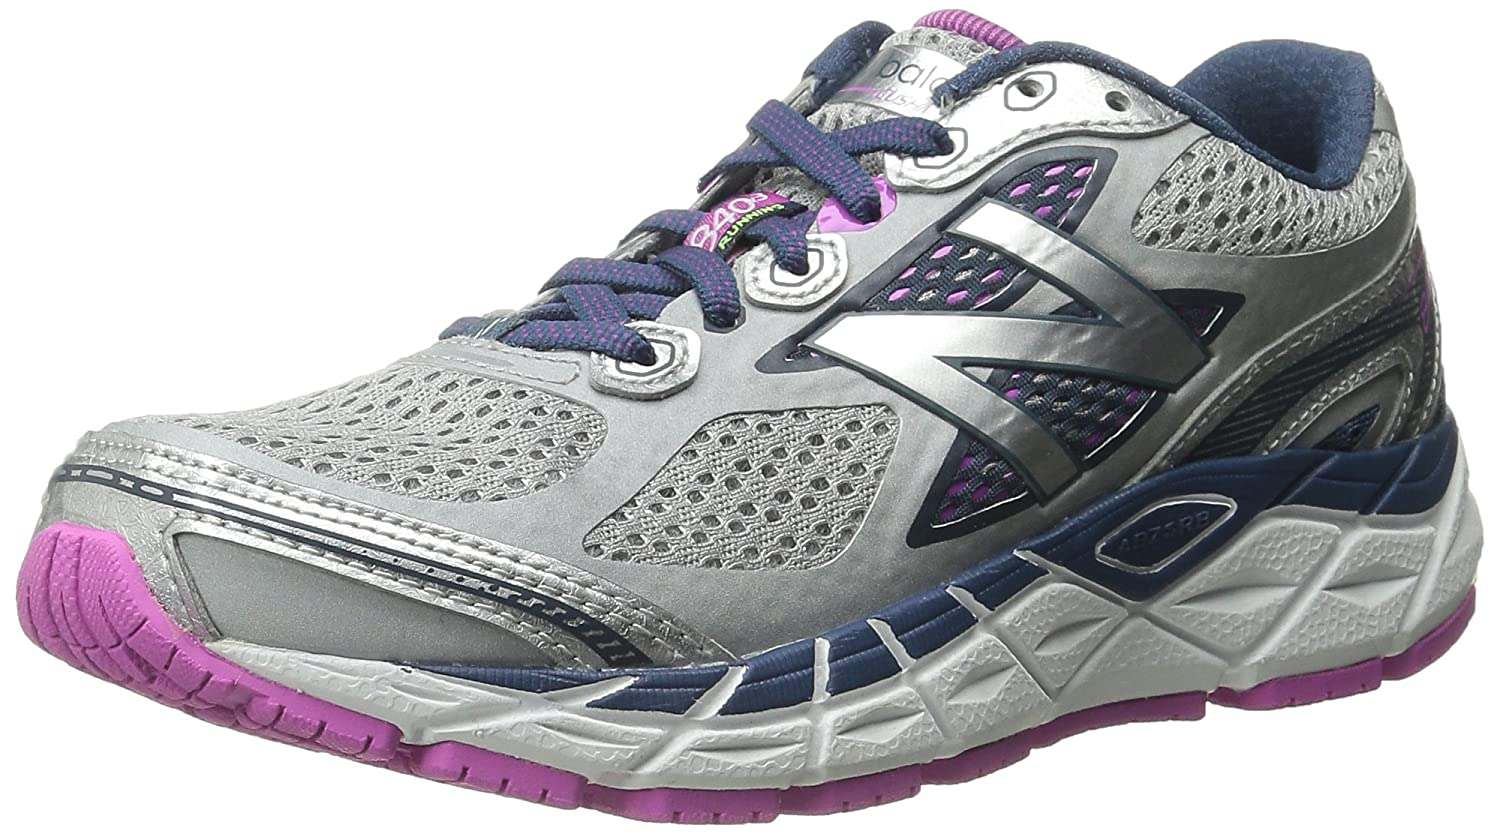 New Balance Women's W840V3 Running Shoe B00V3NBKPC 5.5 D US|Silver/Navy